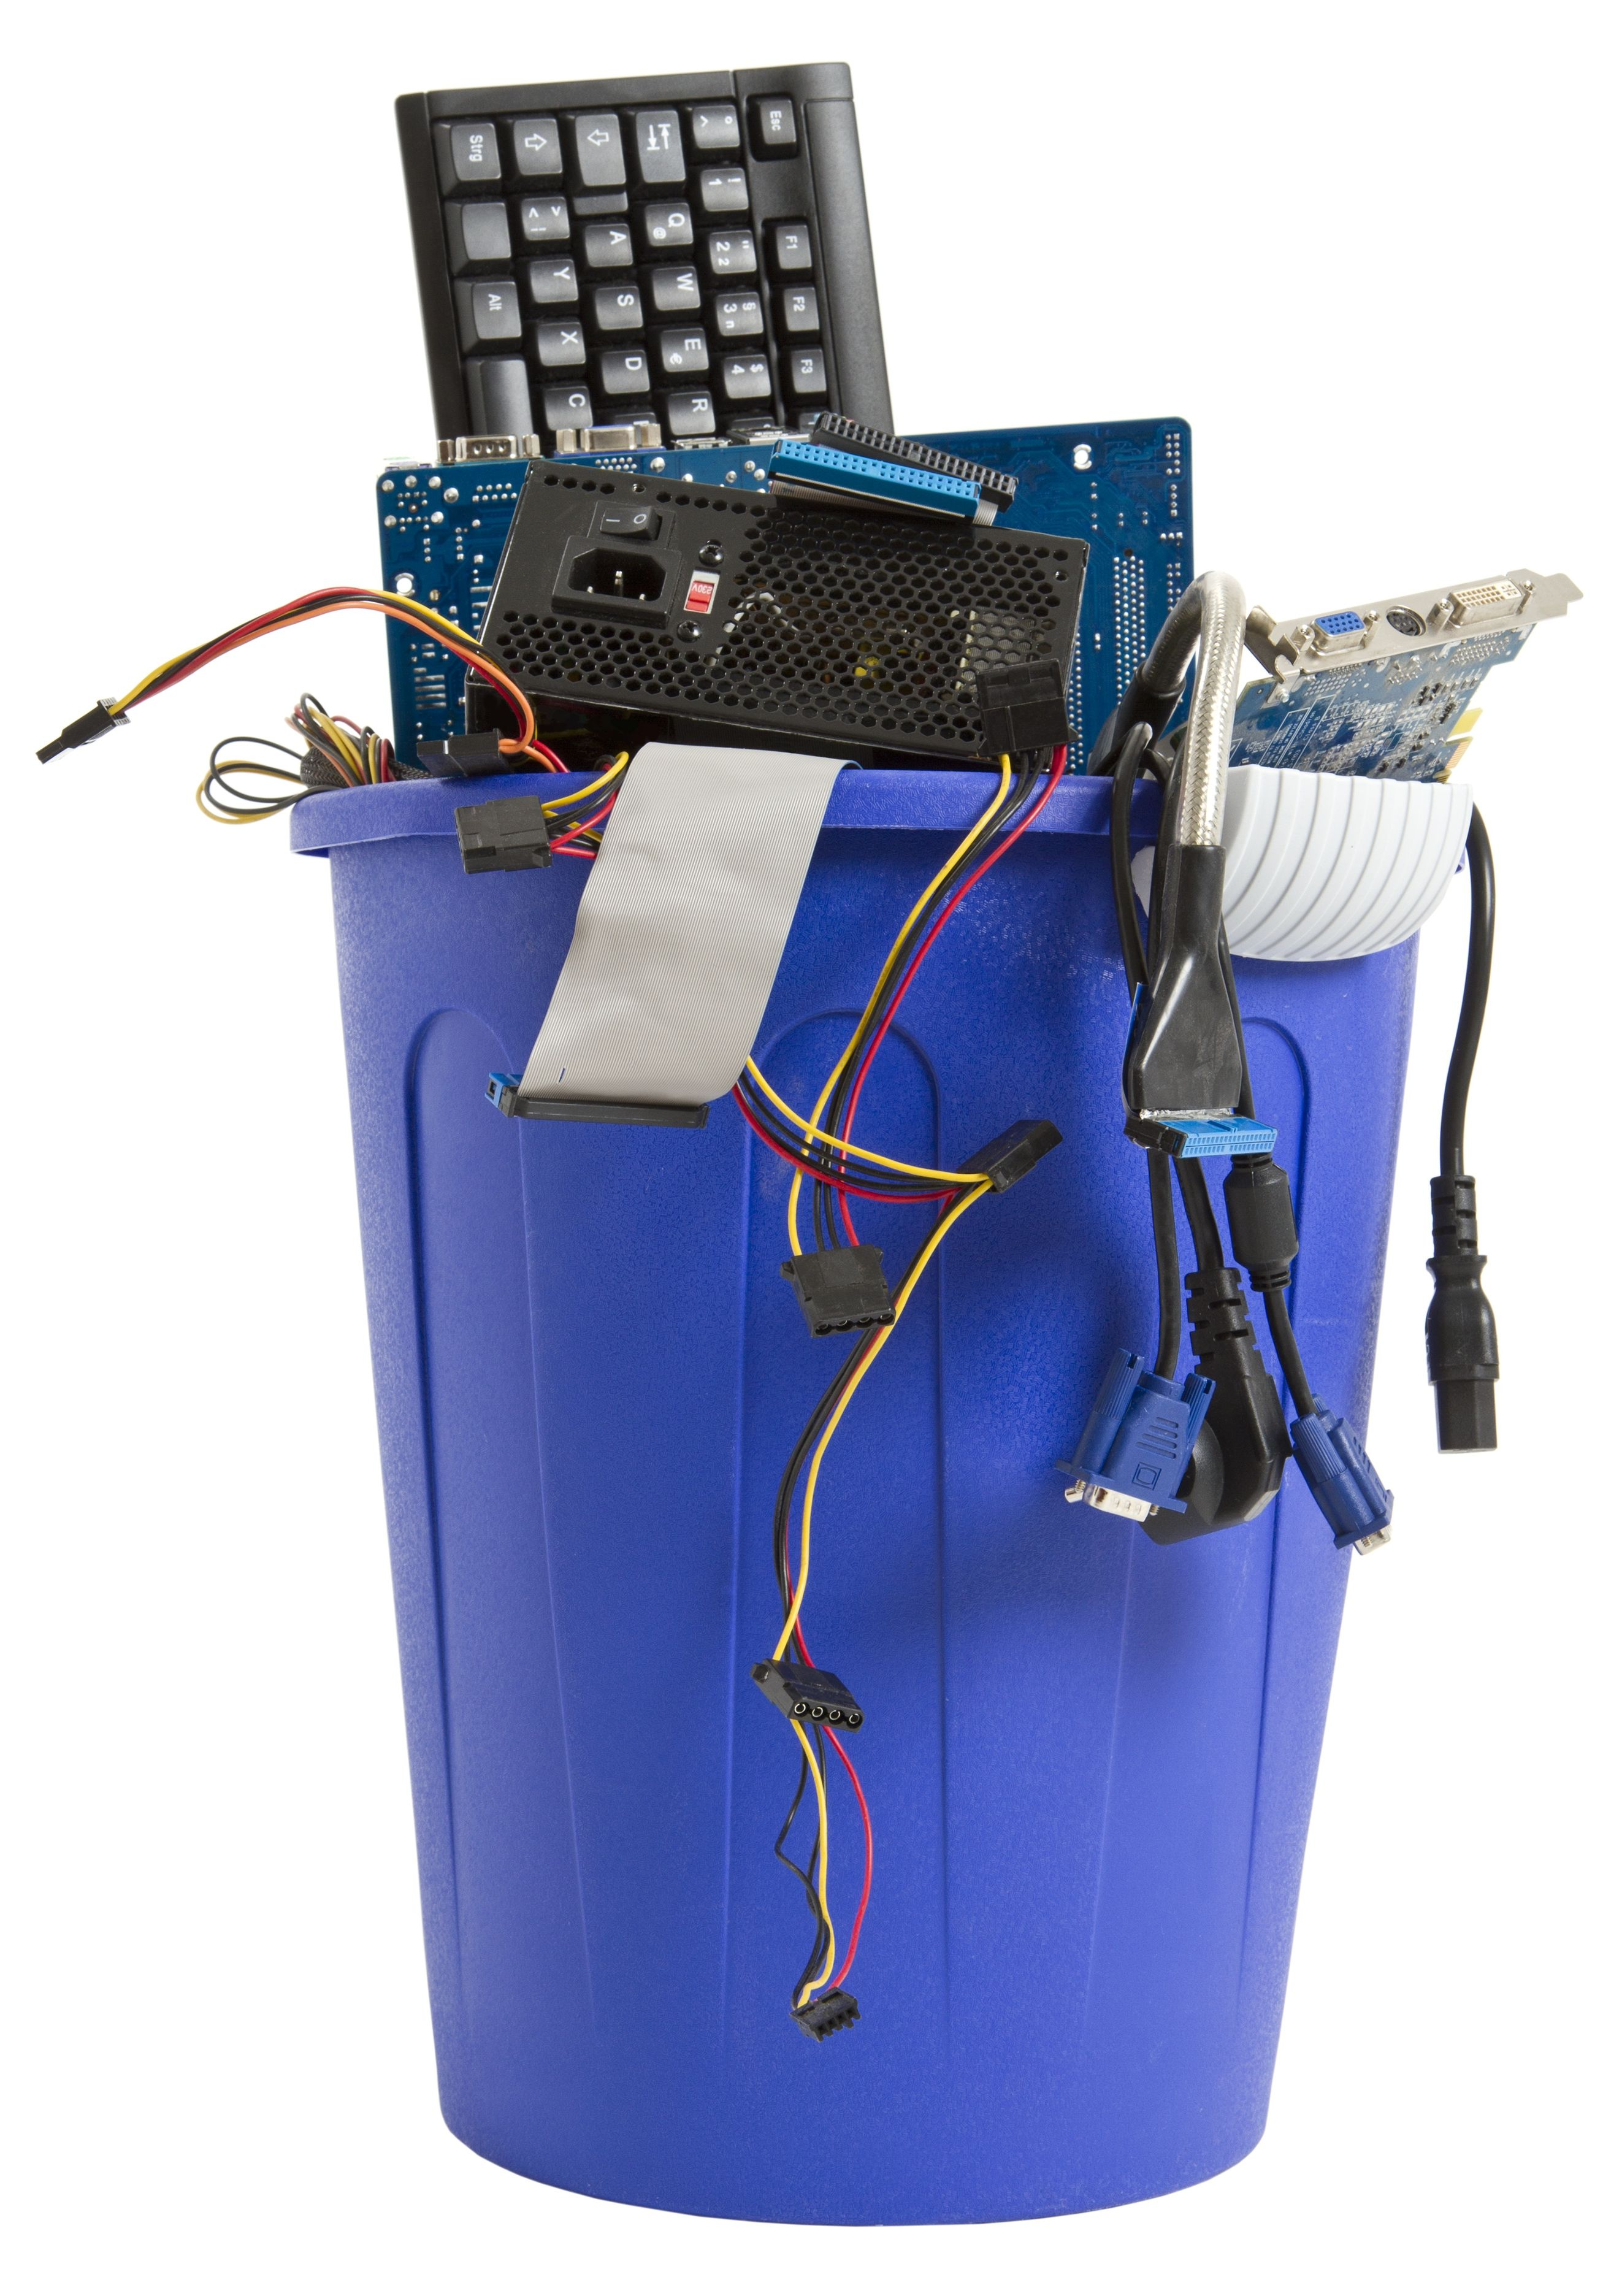 Graphic_Recycling_Computers